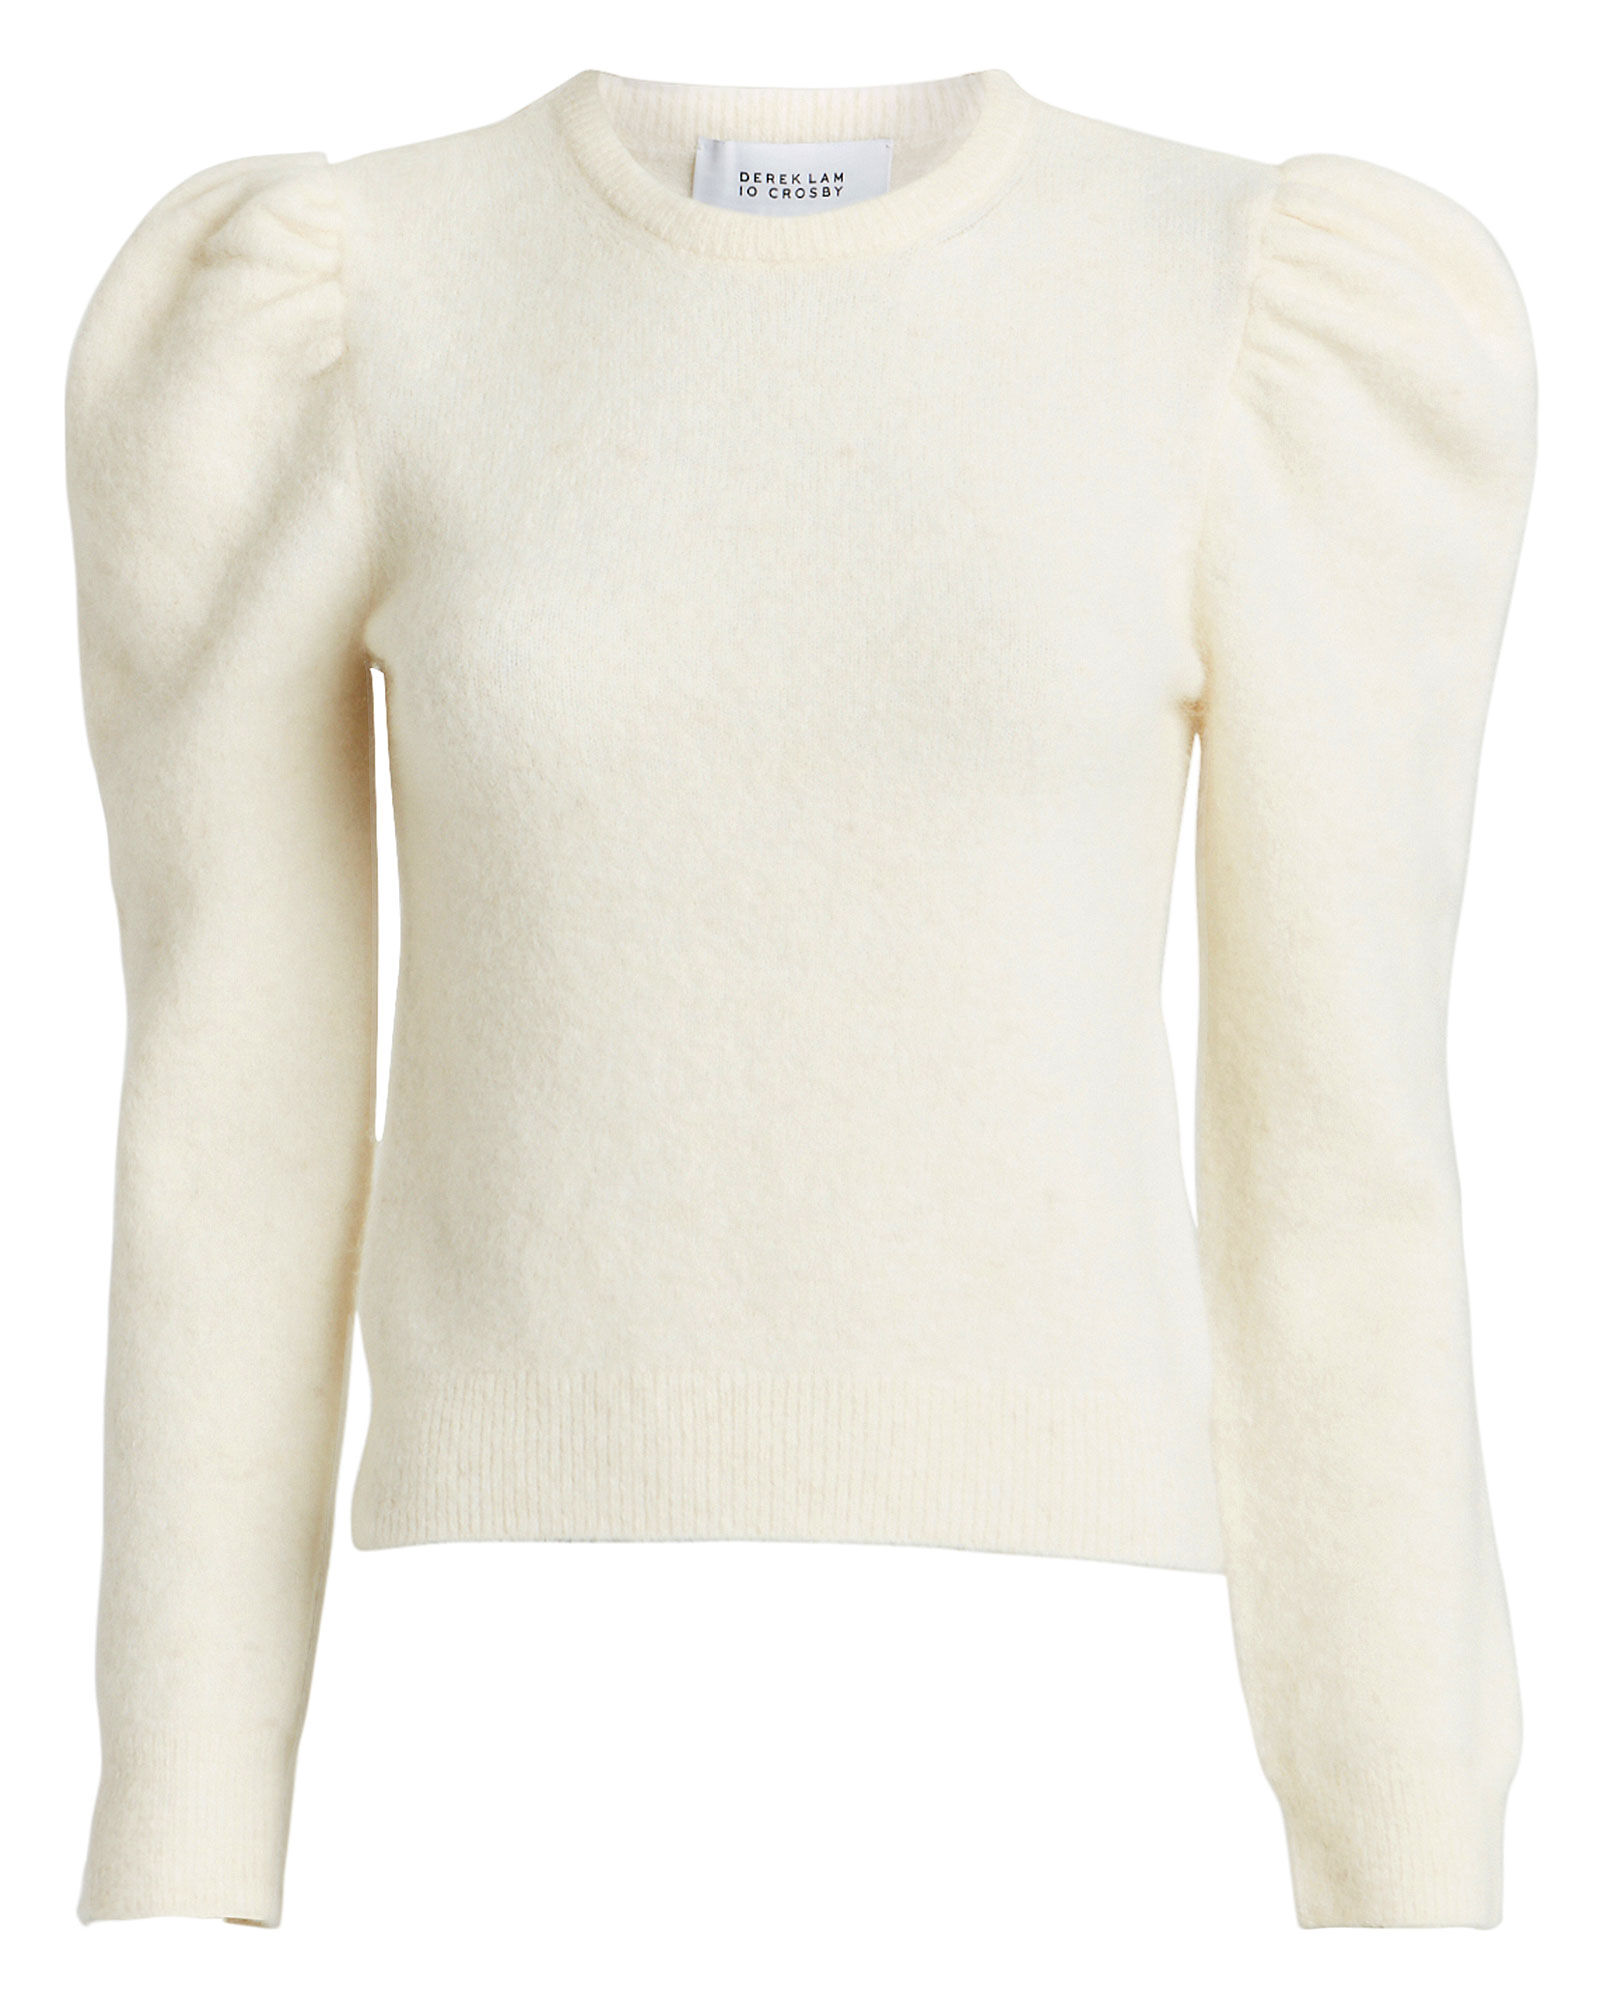 Alpaca-Blend Puff Sleeve Sweater, WHITE, hi-res